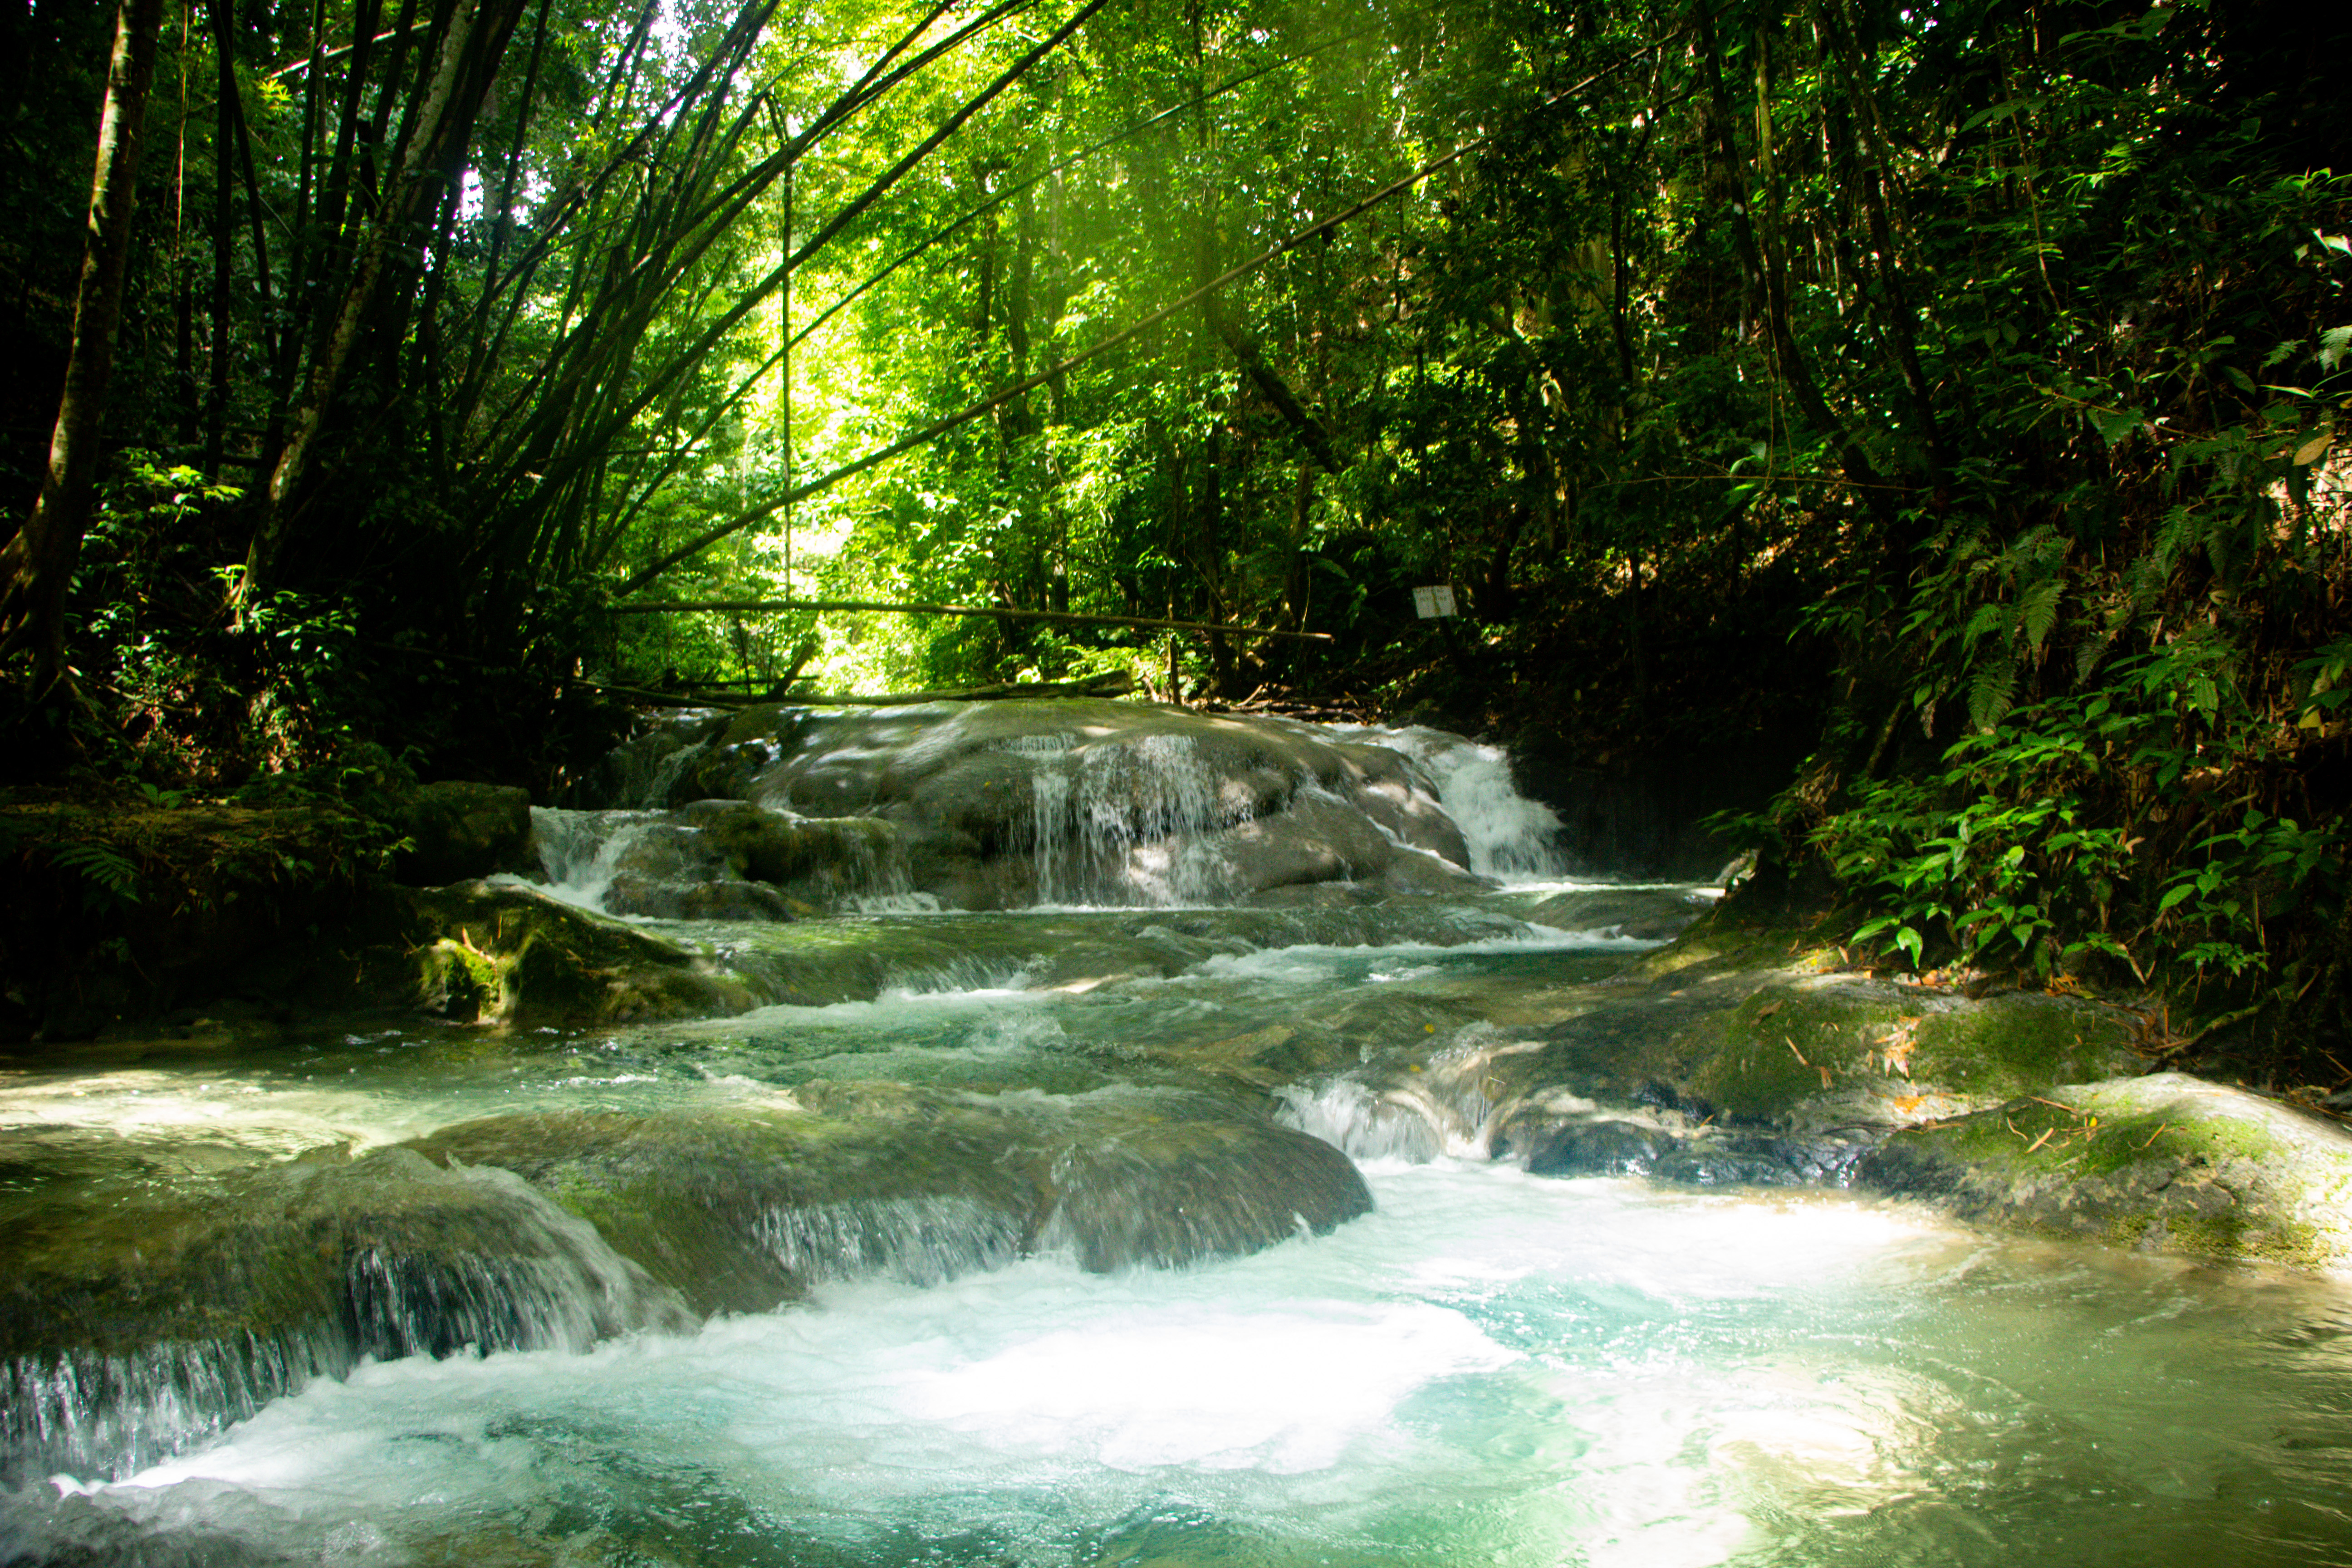 NEGRIL: Mayfield Falls